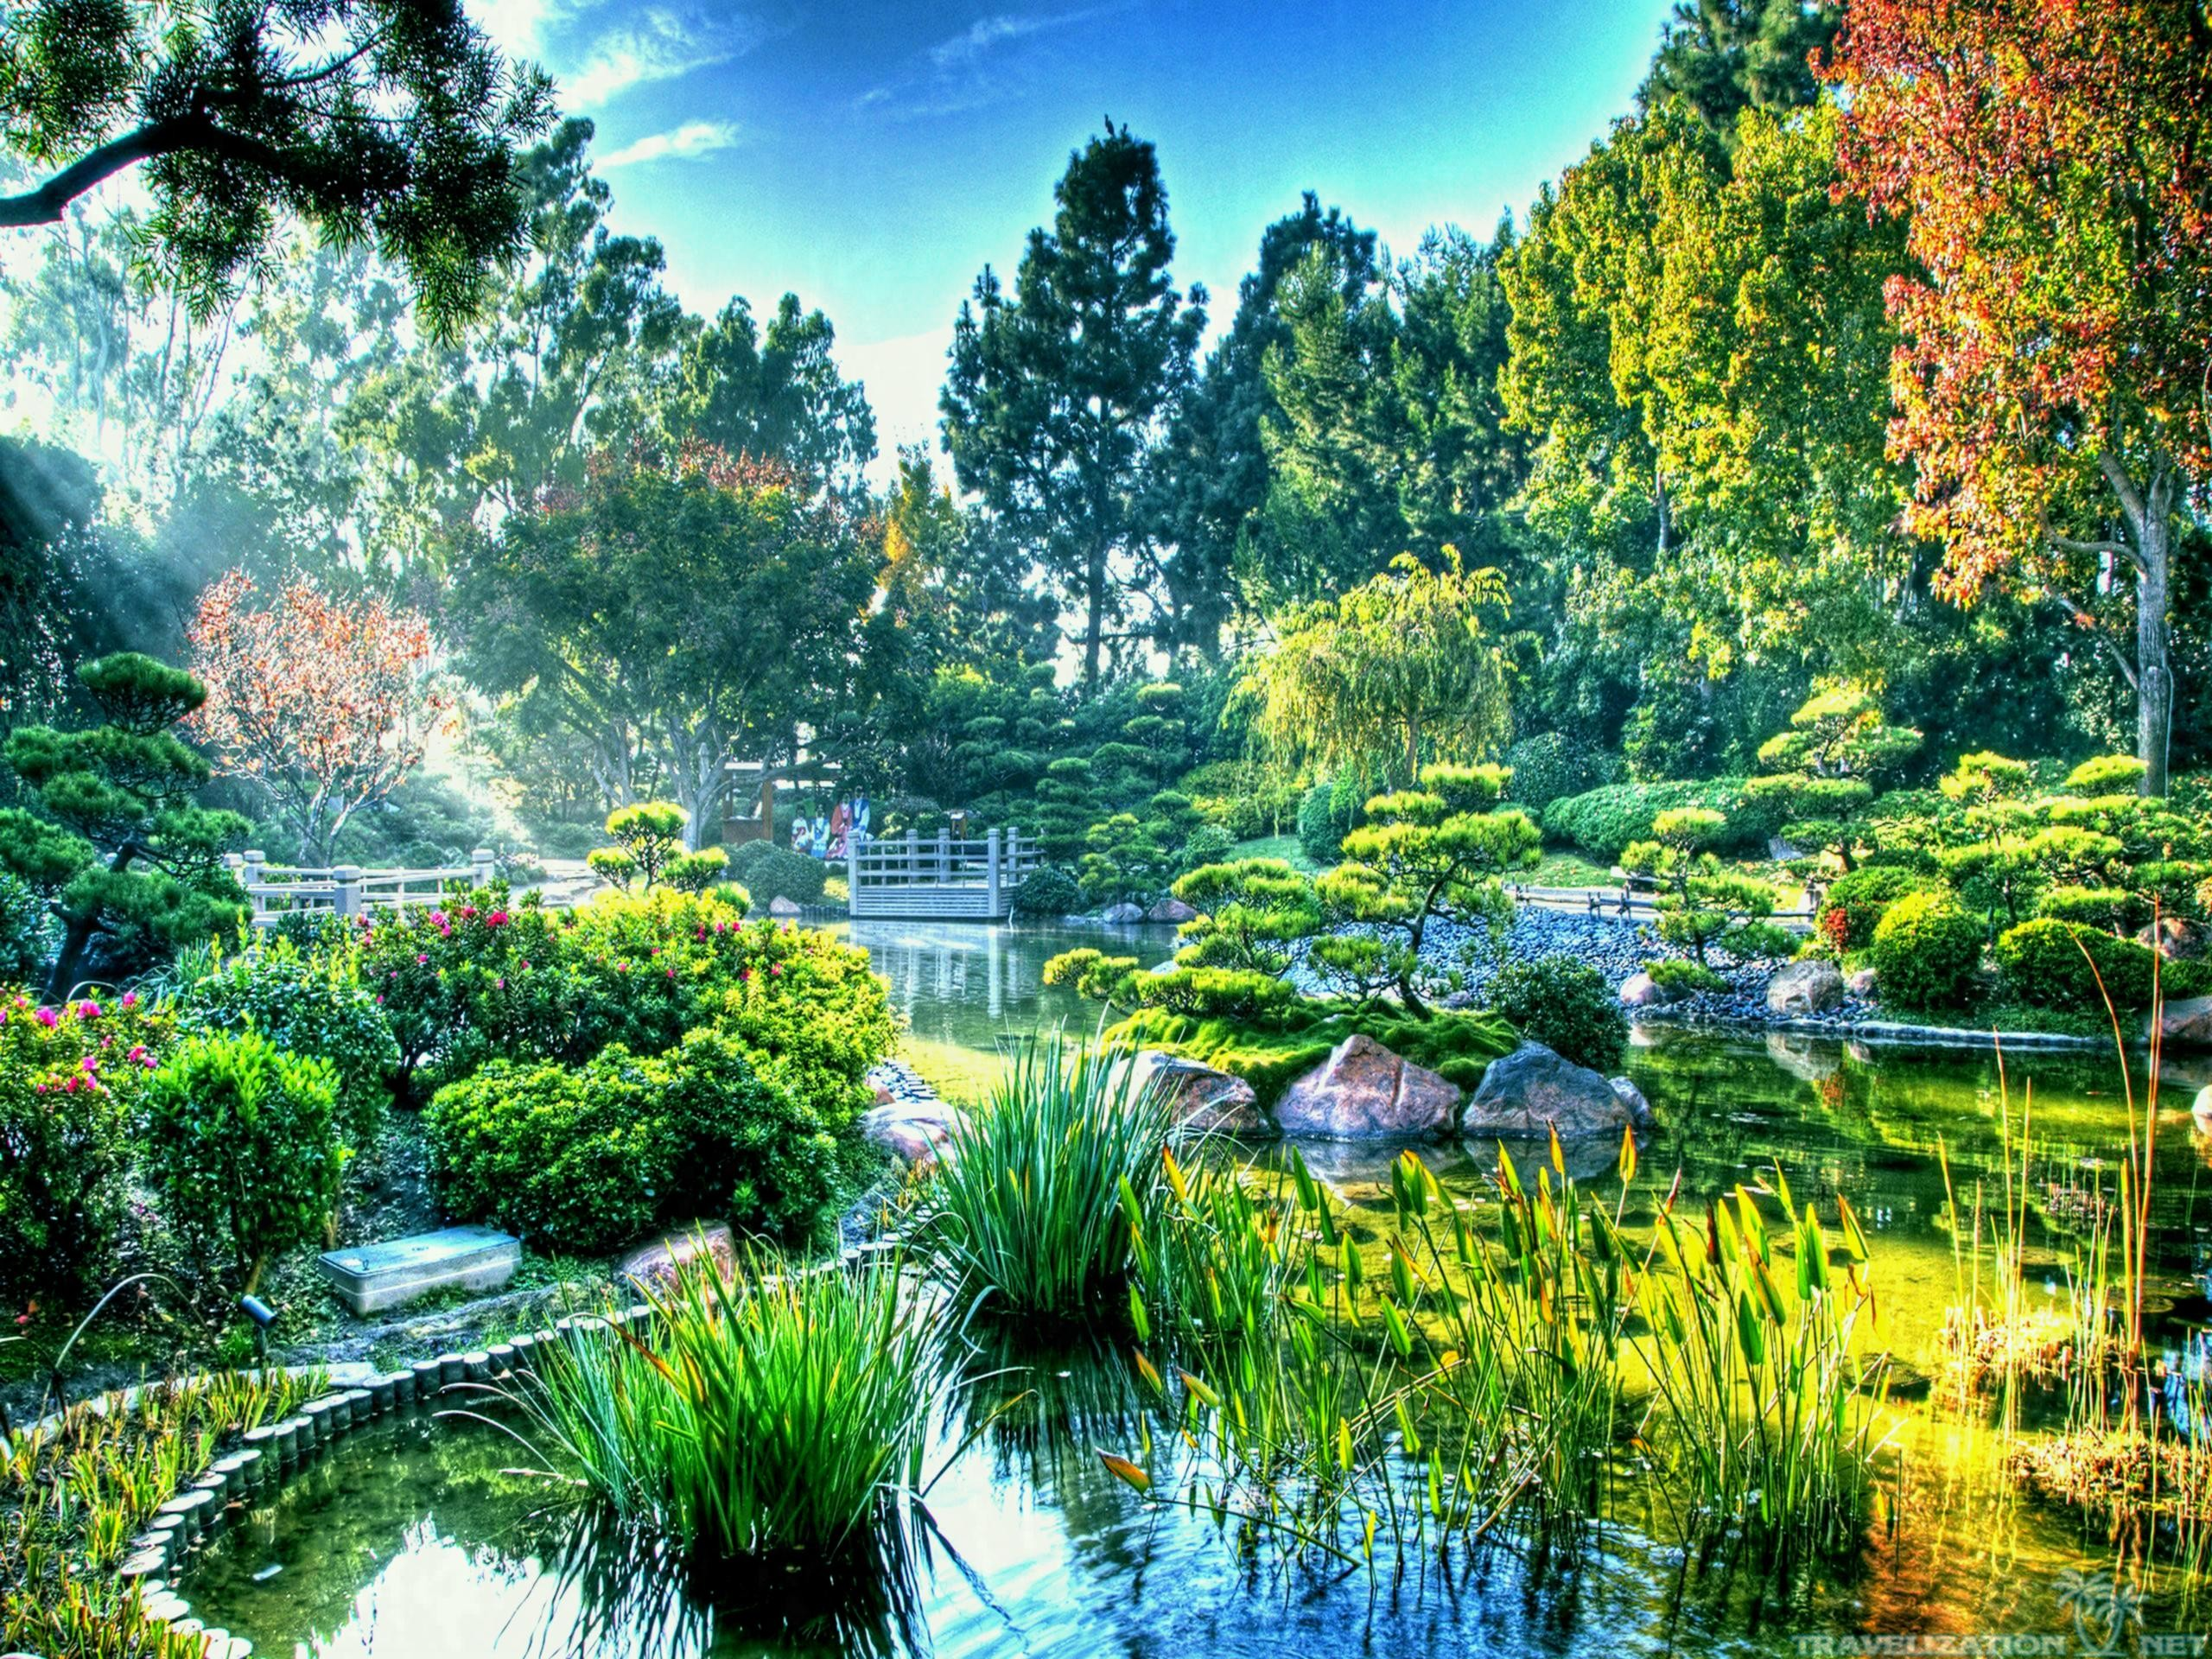 Res: 2560x1920, The Most Beautiful Gardens All Over World Wallpapers Idolza Of Makeover  Ideas Design Websitepany Affordable Furniture